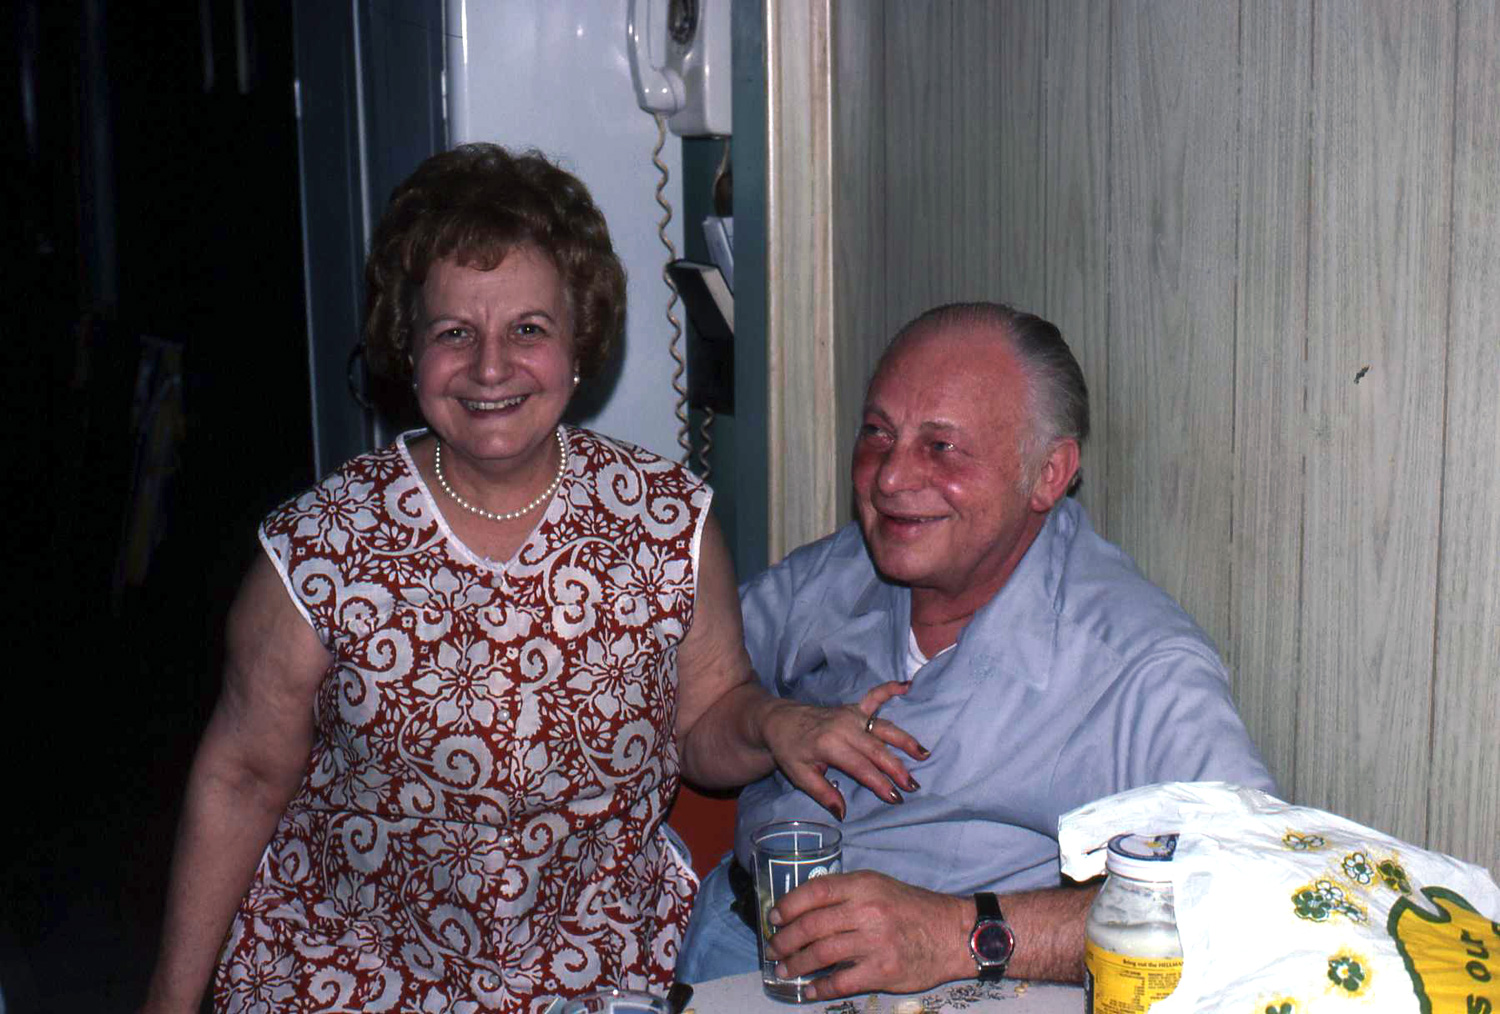 After decades of marriage, she was still sitting on his lap, full of smiles as they shared food, laughter and love with family. Those smiles tell the story.  Photo credit: Paul Majewski